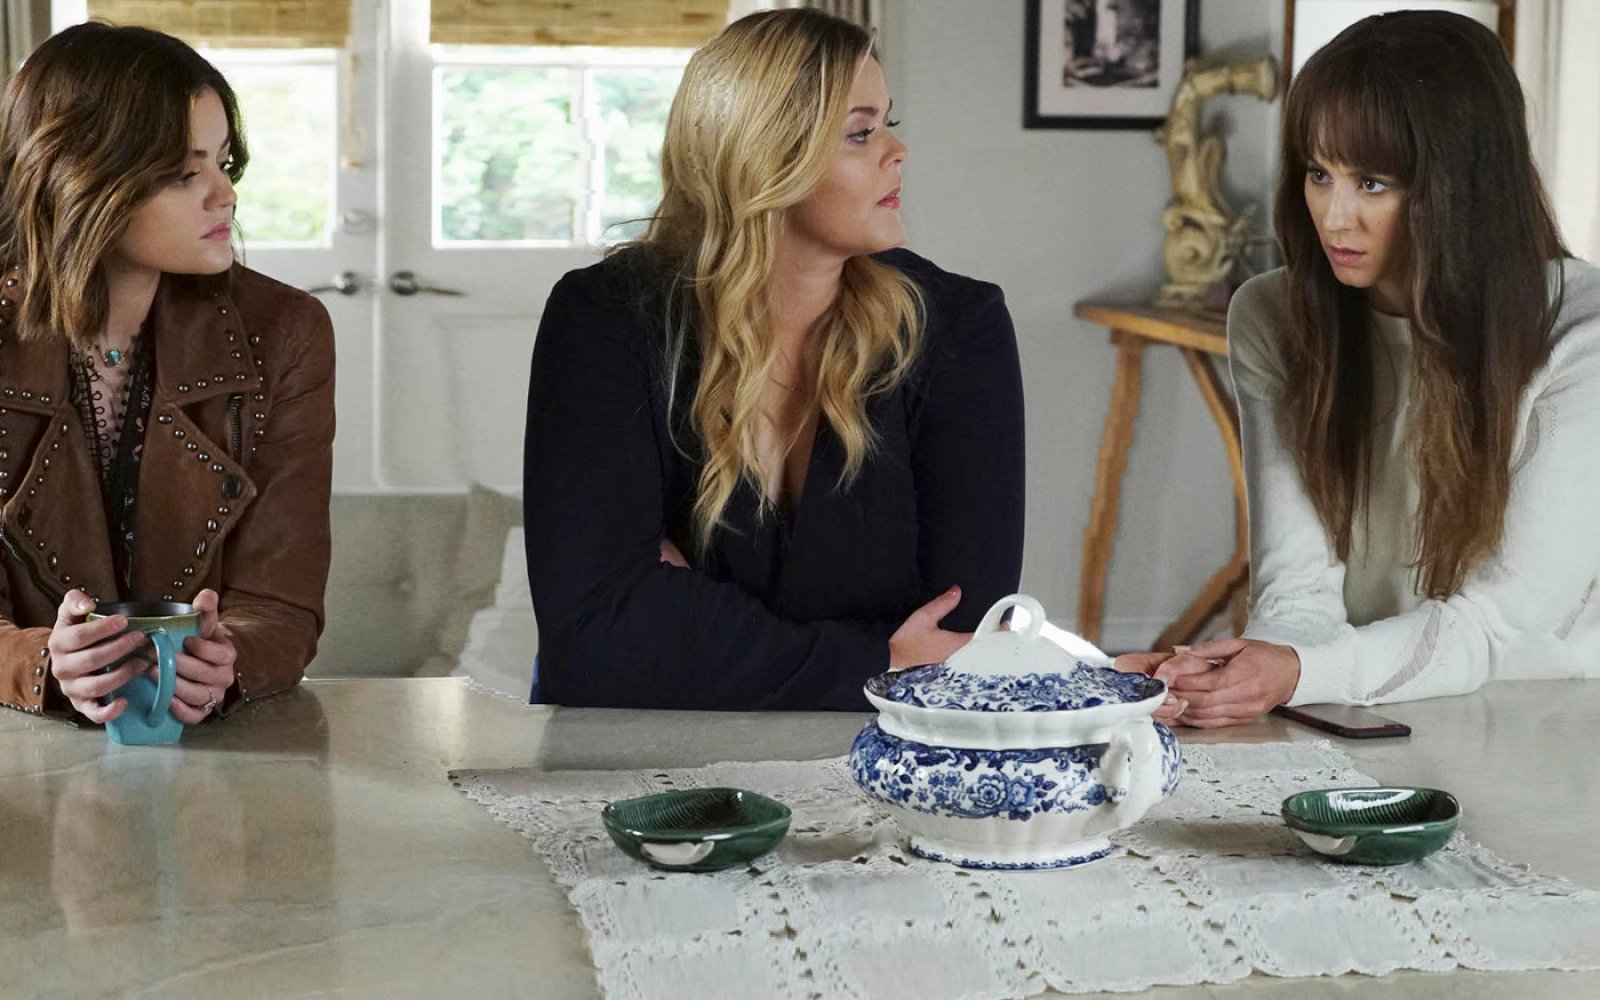 15 Of The Greatest 'Pretty Little Liars' Quotes About Love, Lust, And Secrets